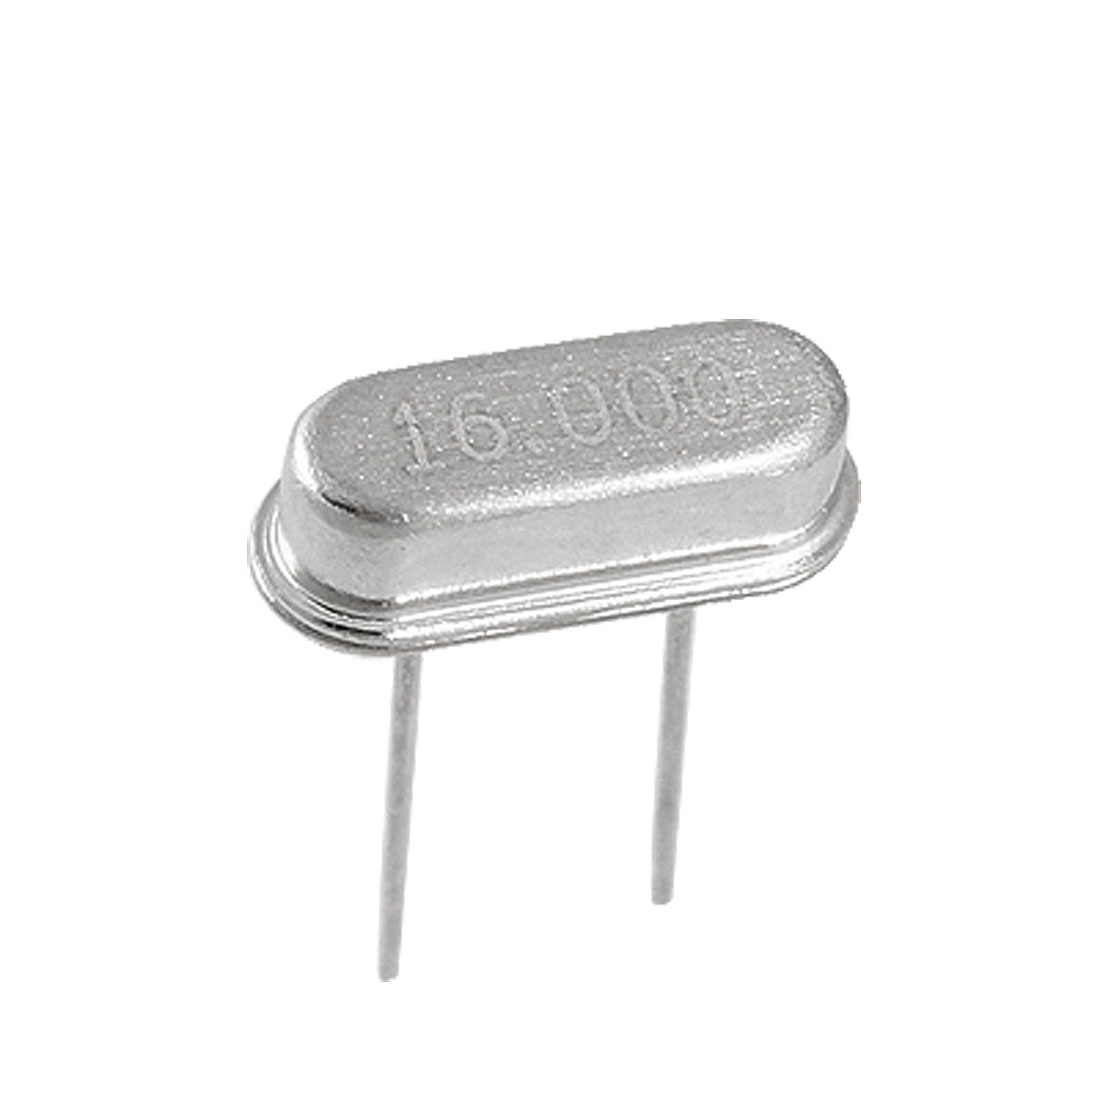 50 Pcs 16.000MHz AT49S 20PF DIP Quartz Crystal Oscillator